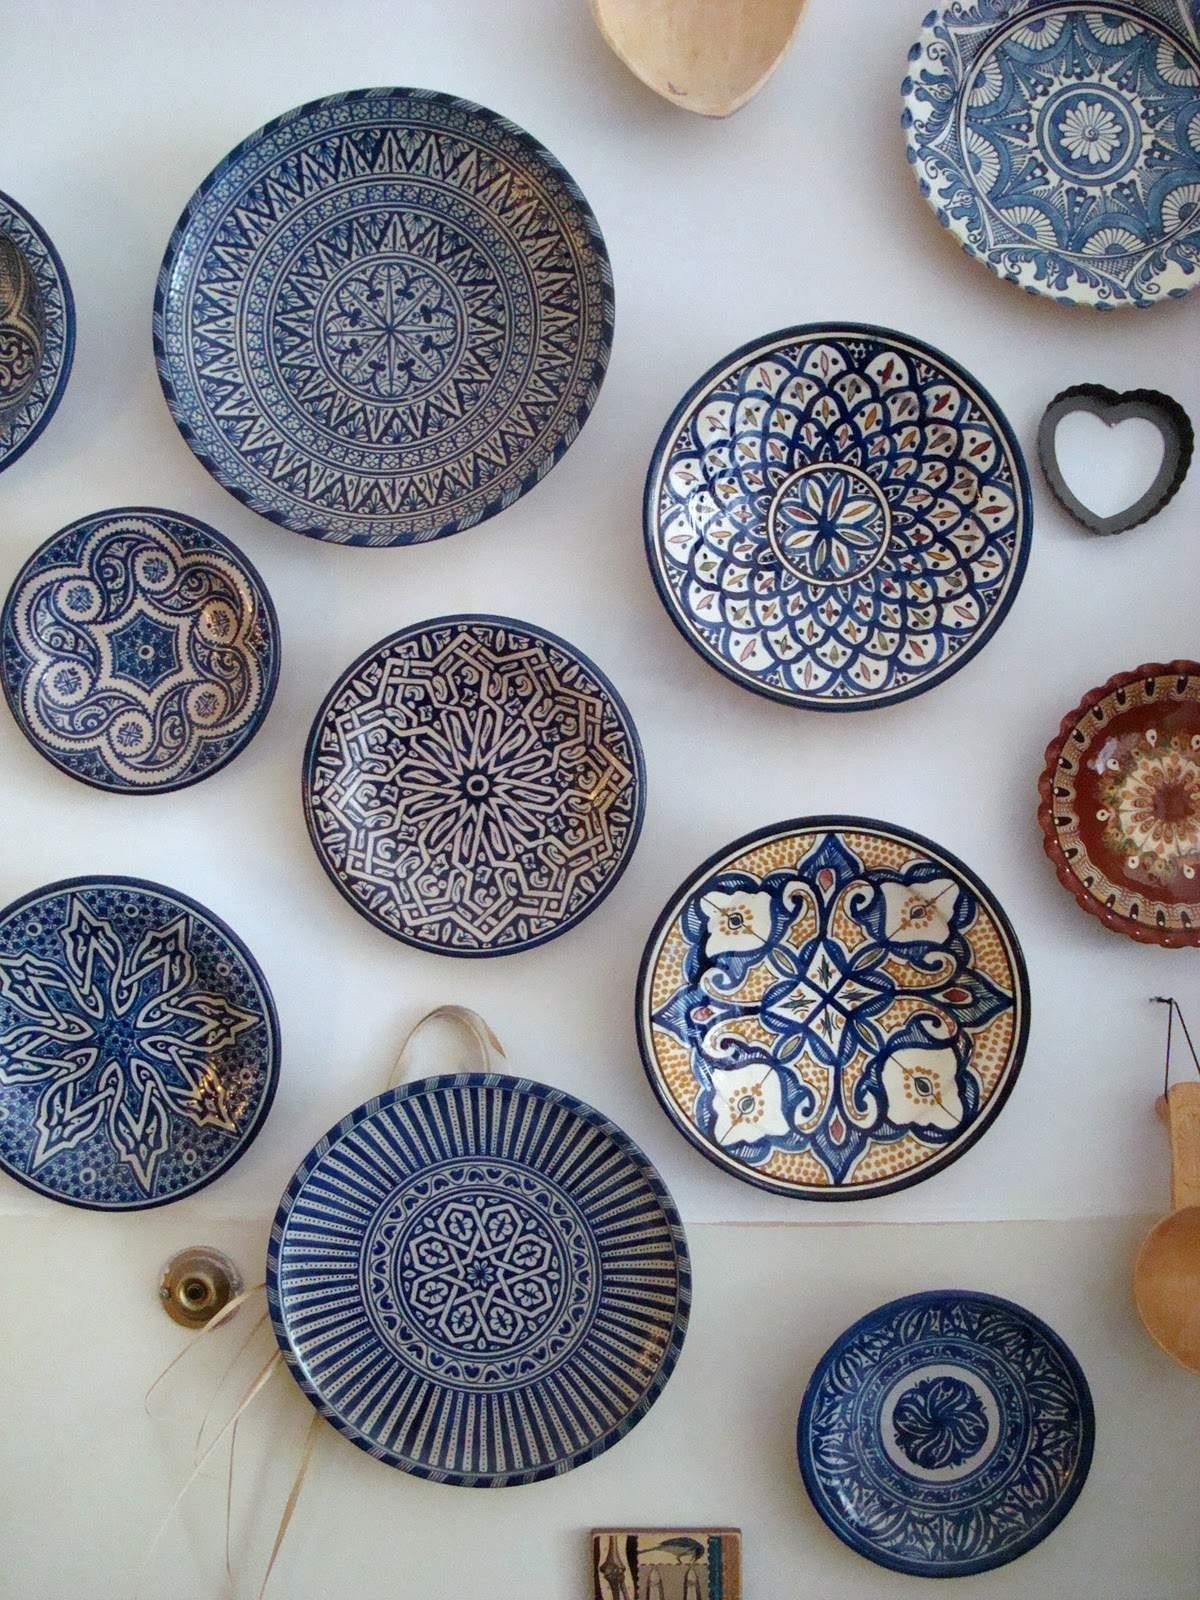 Amazing Decorative Ceramic Wall Plates